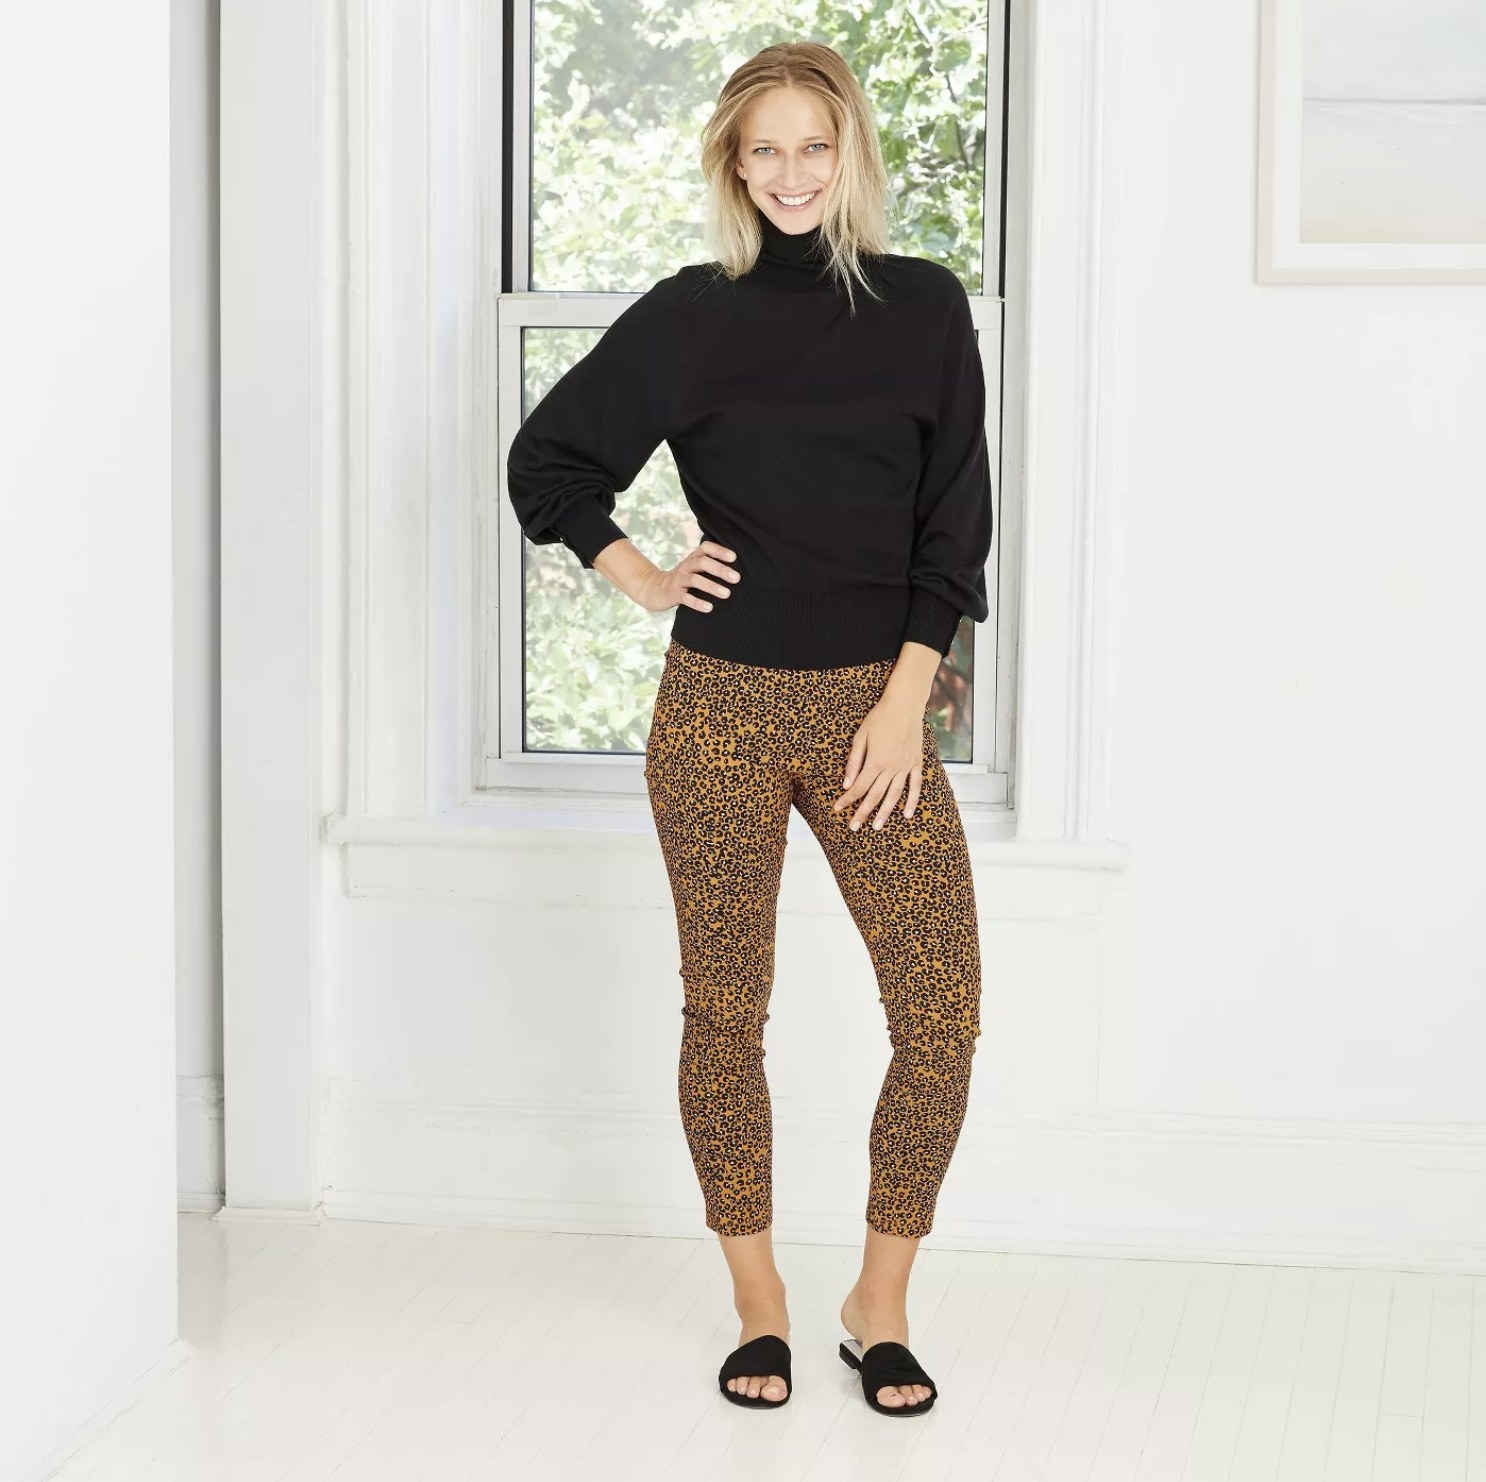 Model is wearing gold leopard print cropped pants, a black turtleneck sweater, and black slides